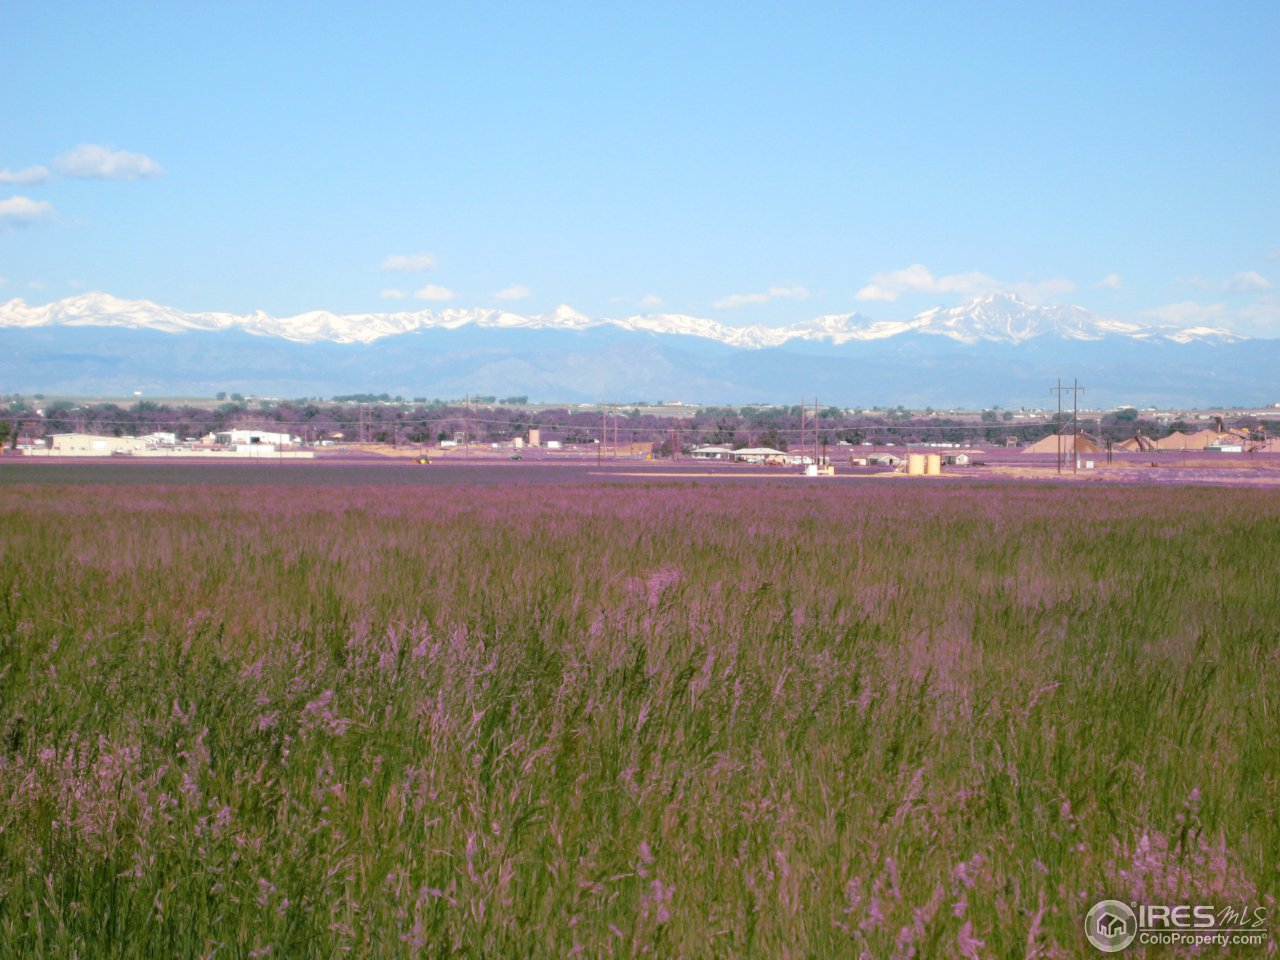 13713 County Road 6, Fort Lupton, CO 80621